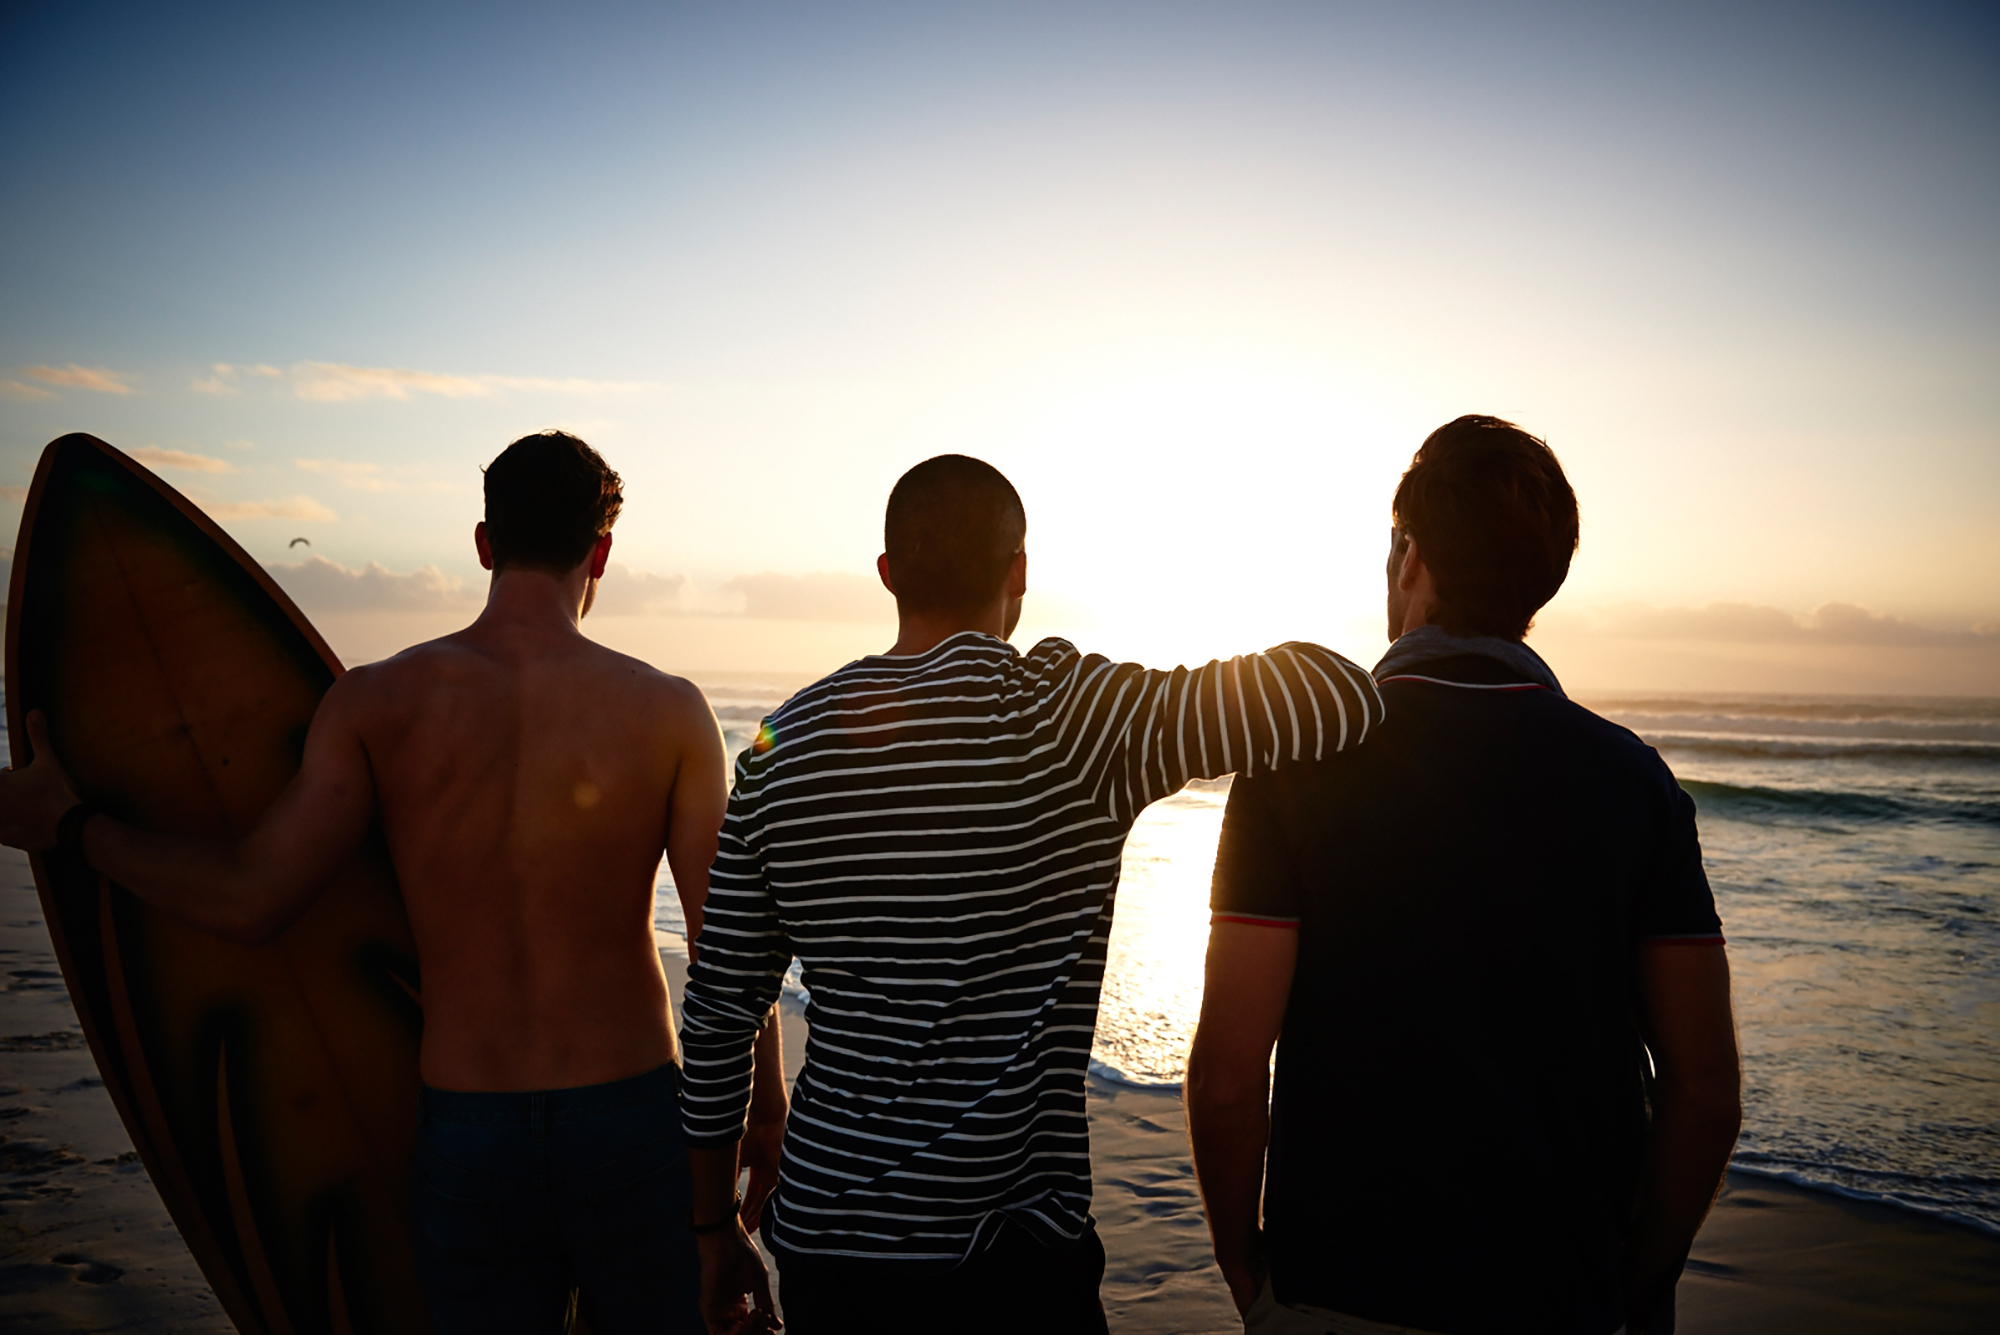 sunset male models beach see